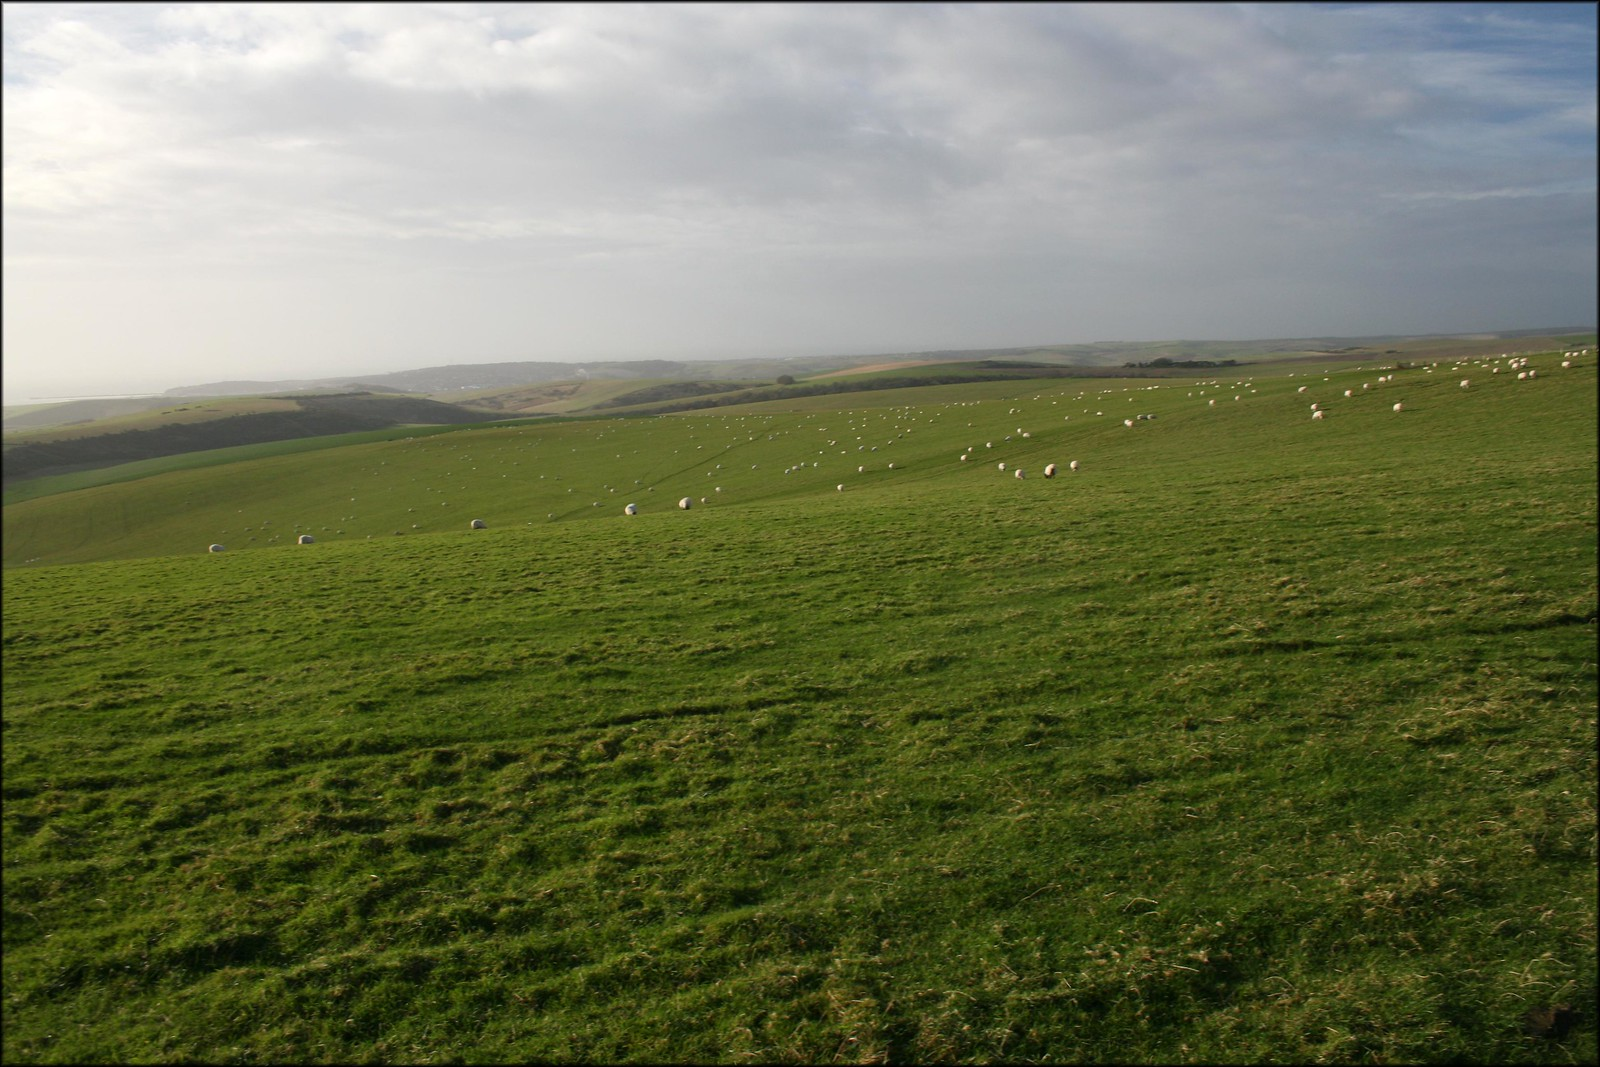 The South Downs near Alfriston